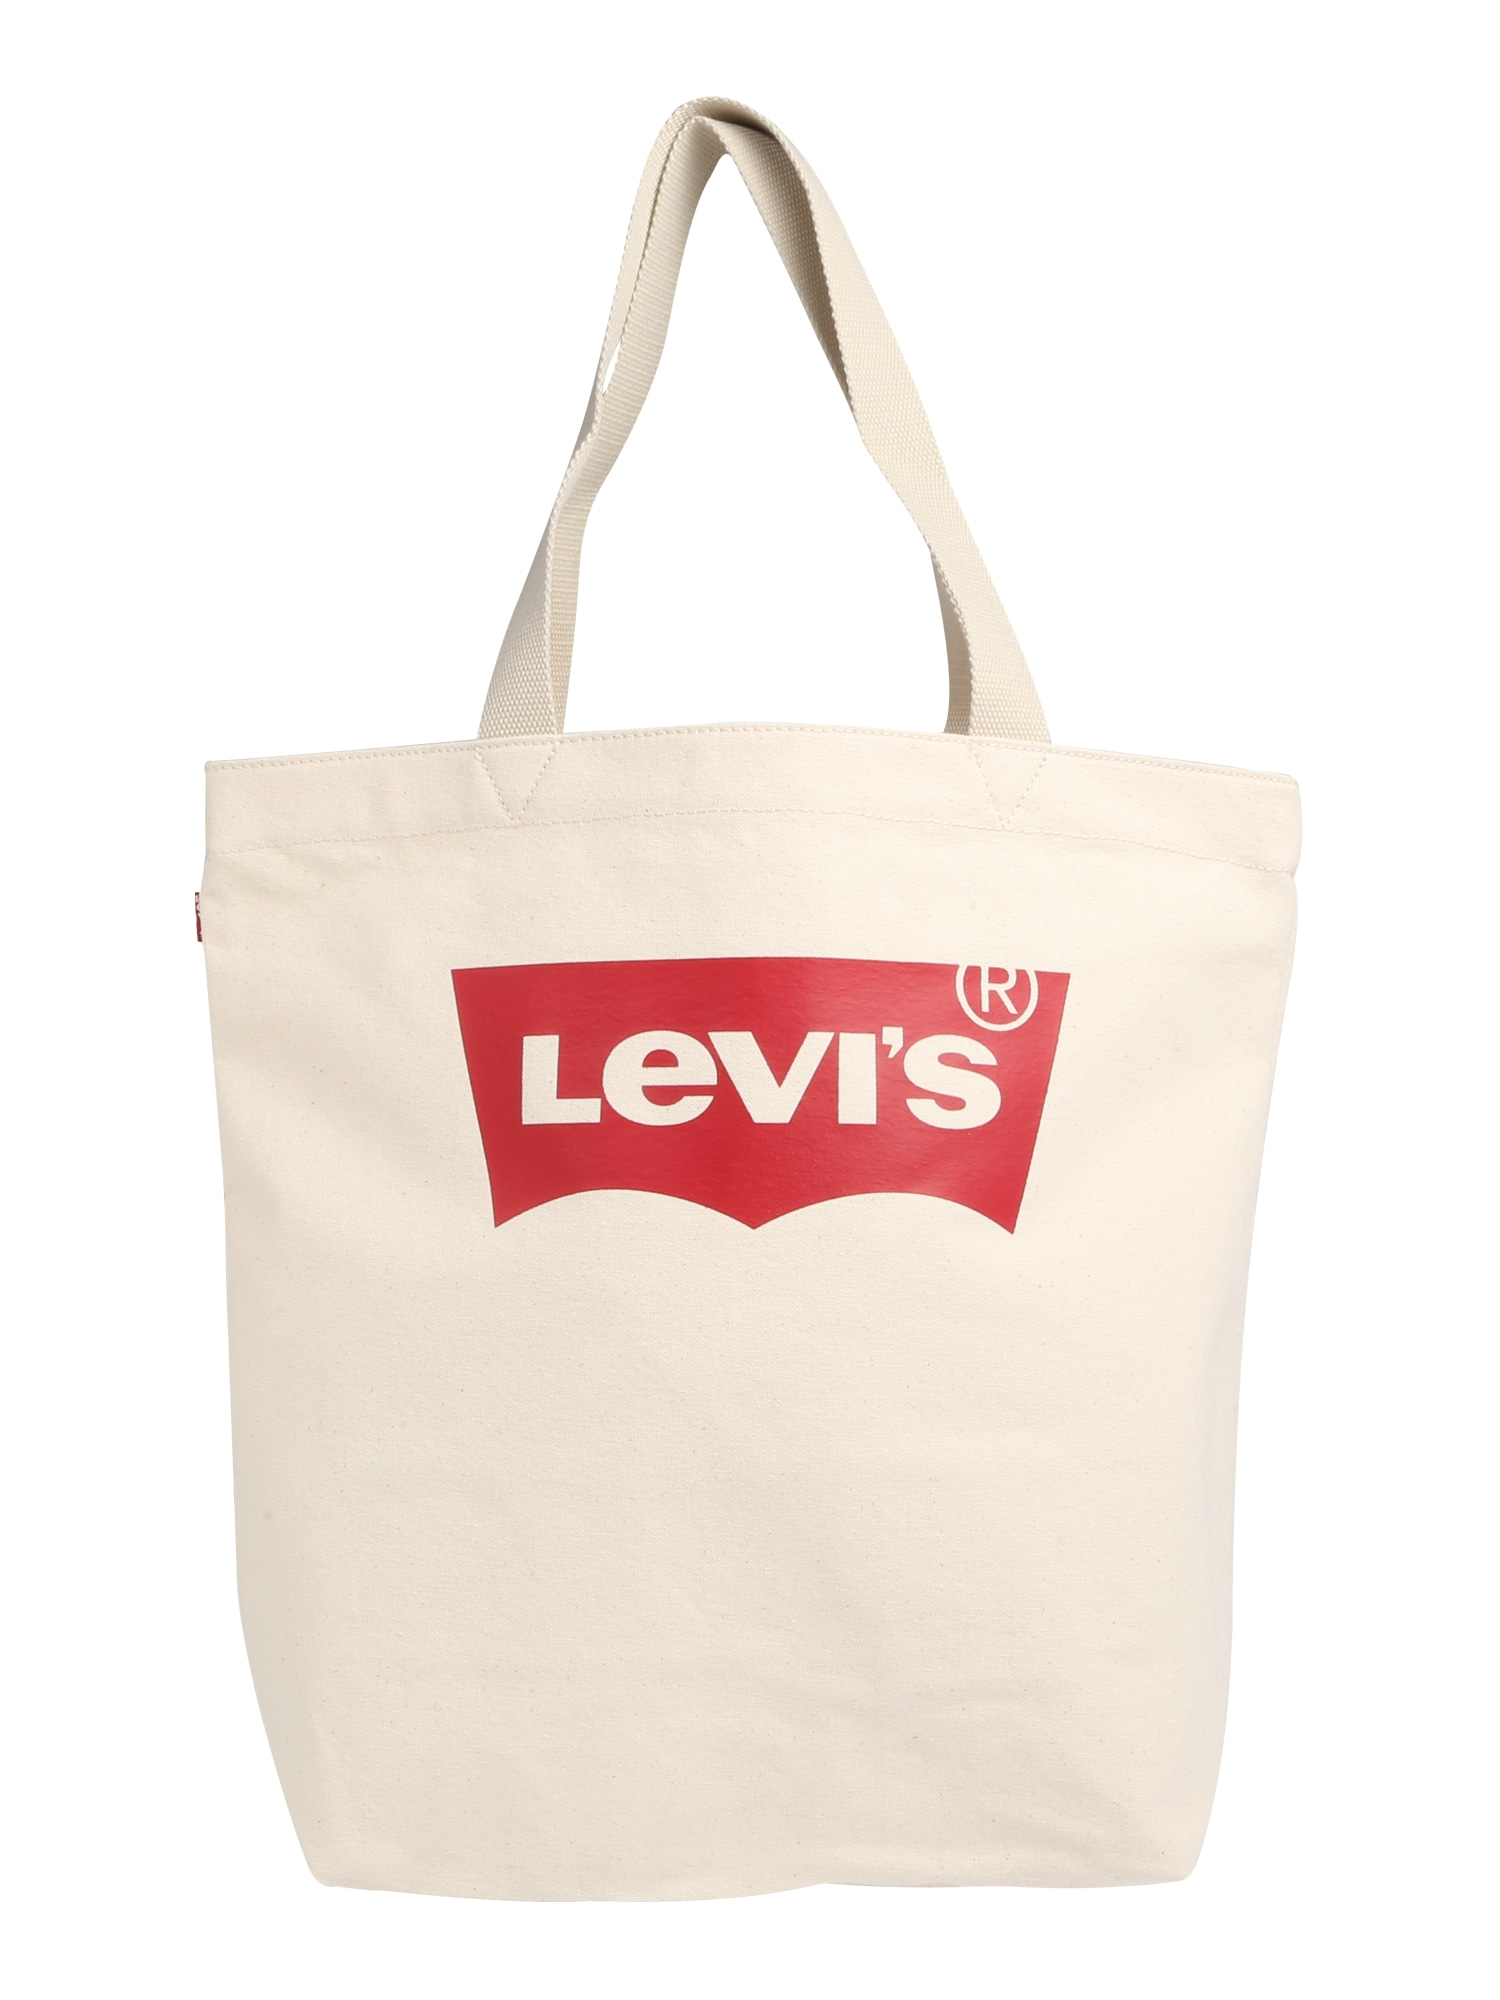 LEVI'S Dames Shopper Batwing rood offwhite